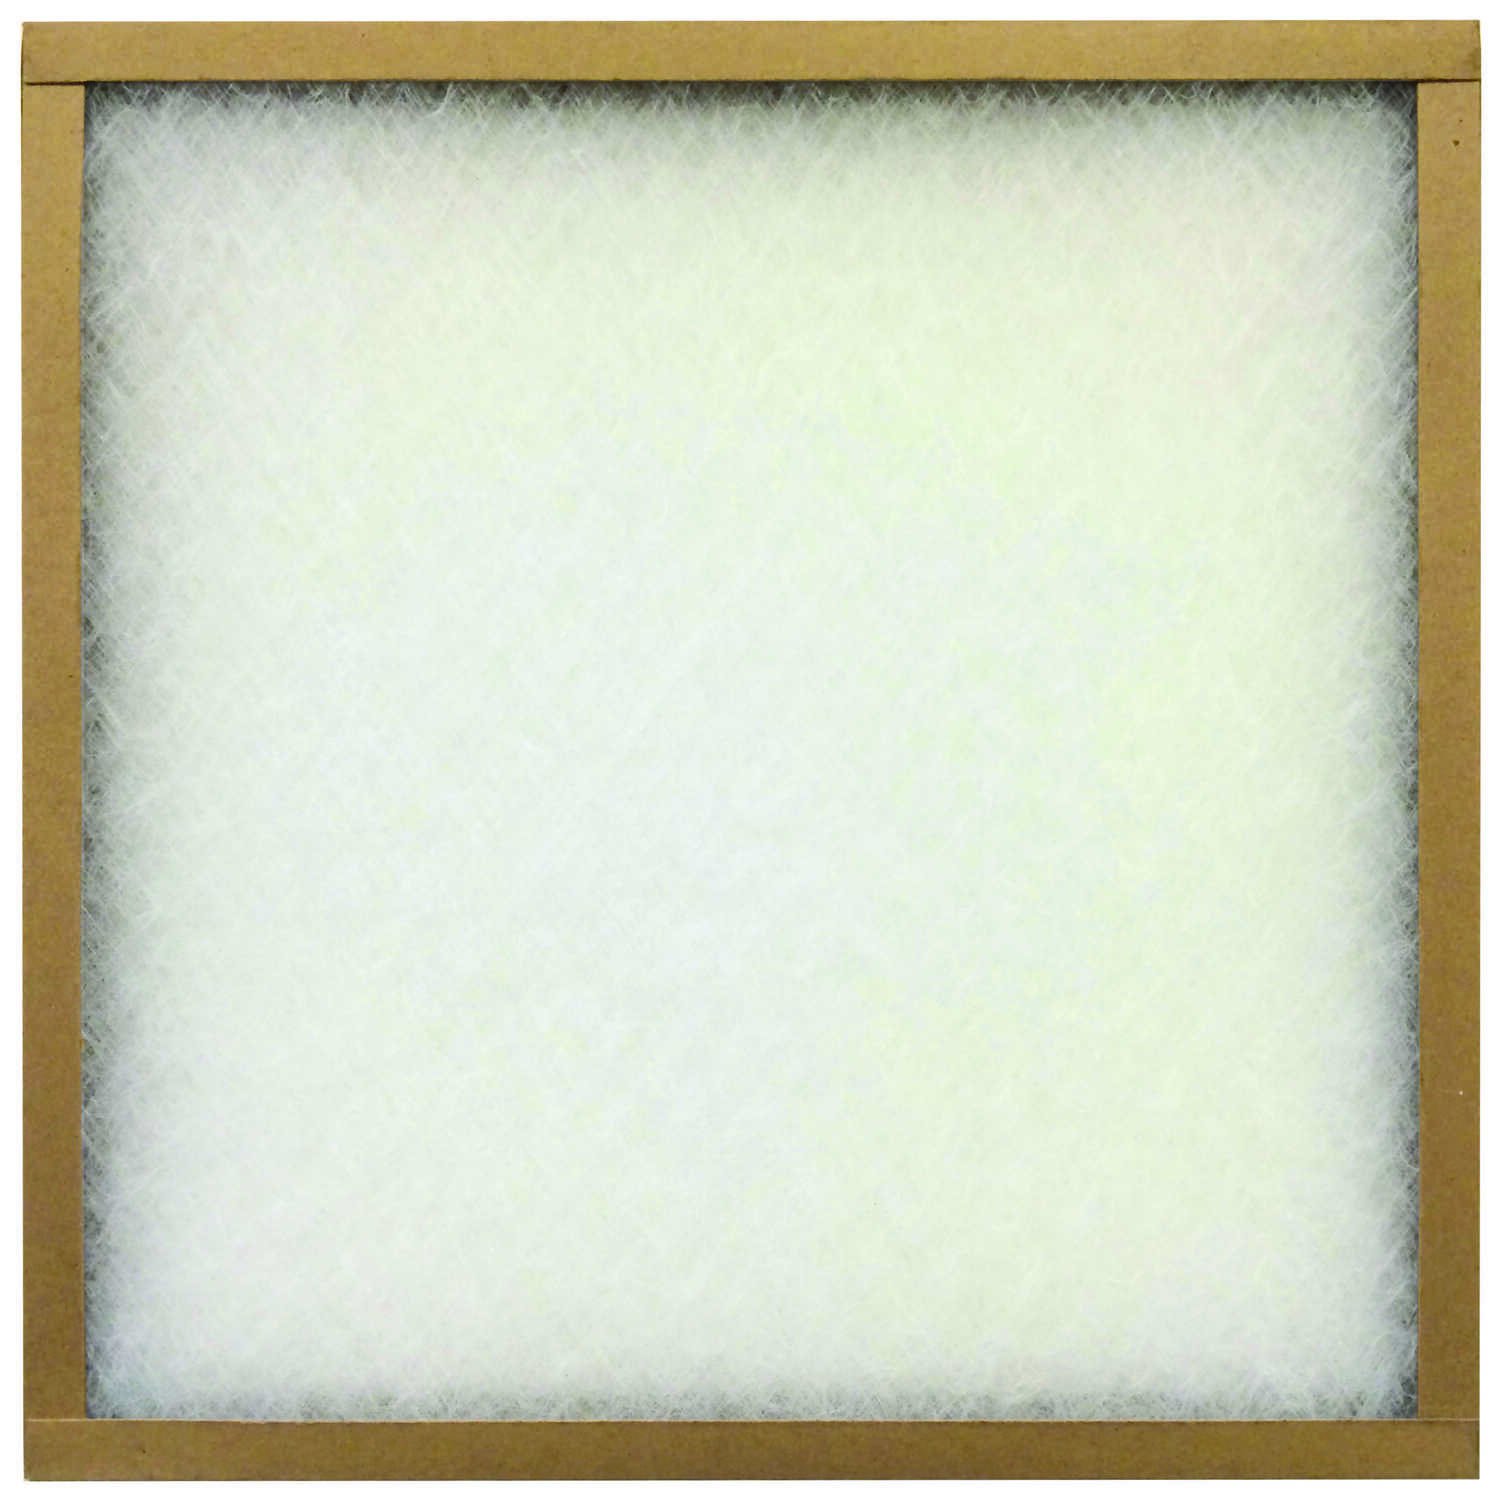 AAF Flanders  16 in. W x 25 in. H x 2 in. D Fiberglass  Pleated Air Filter